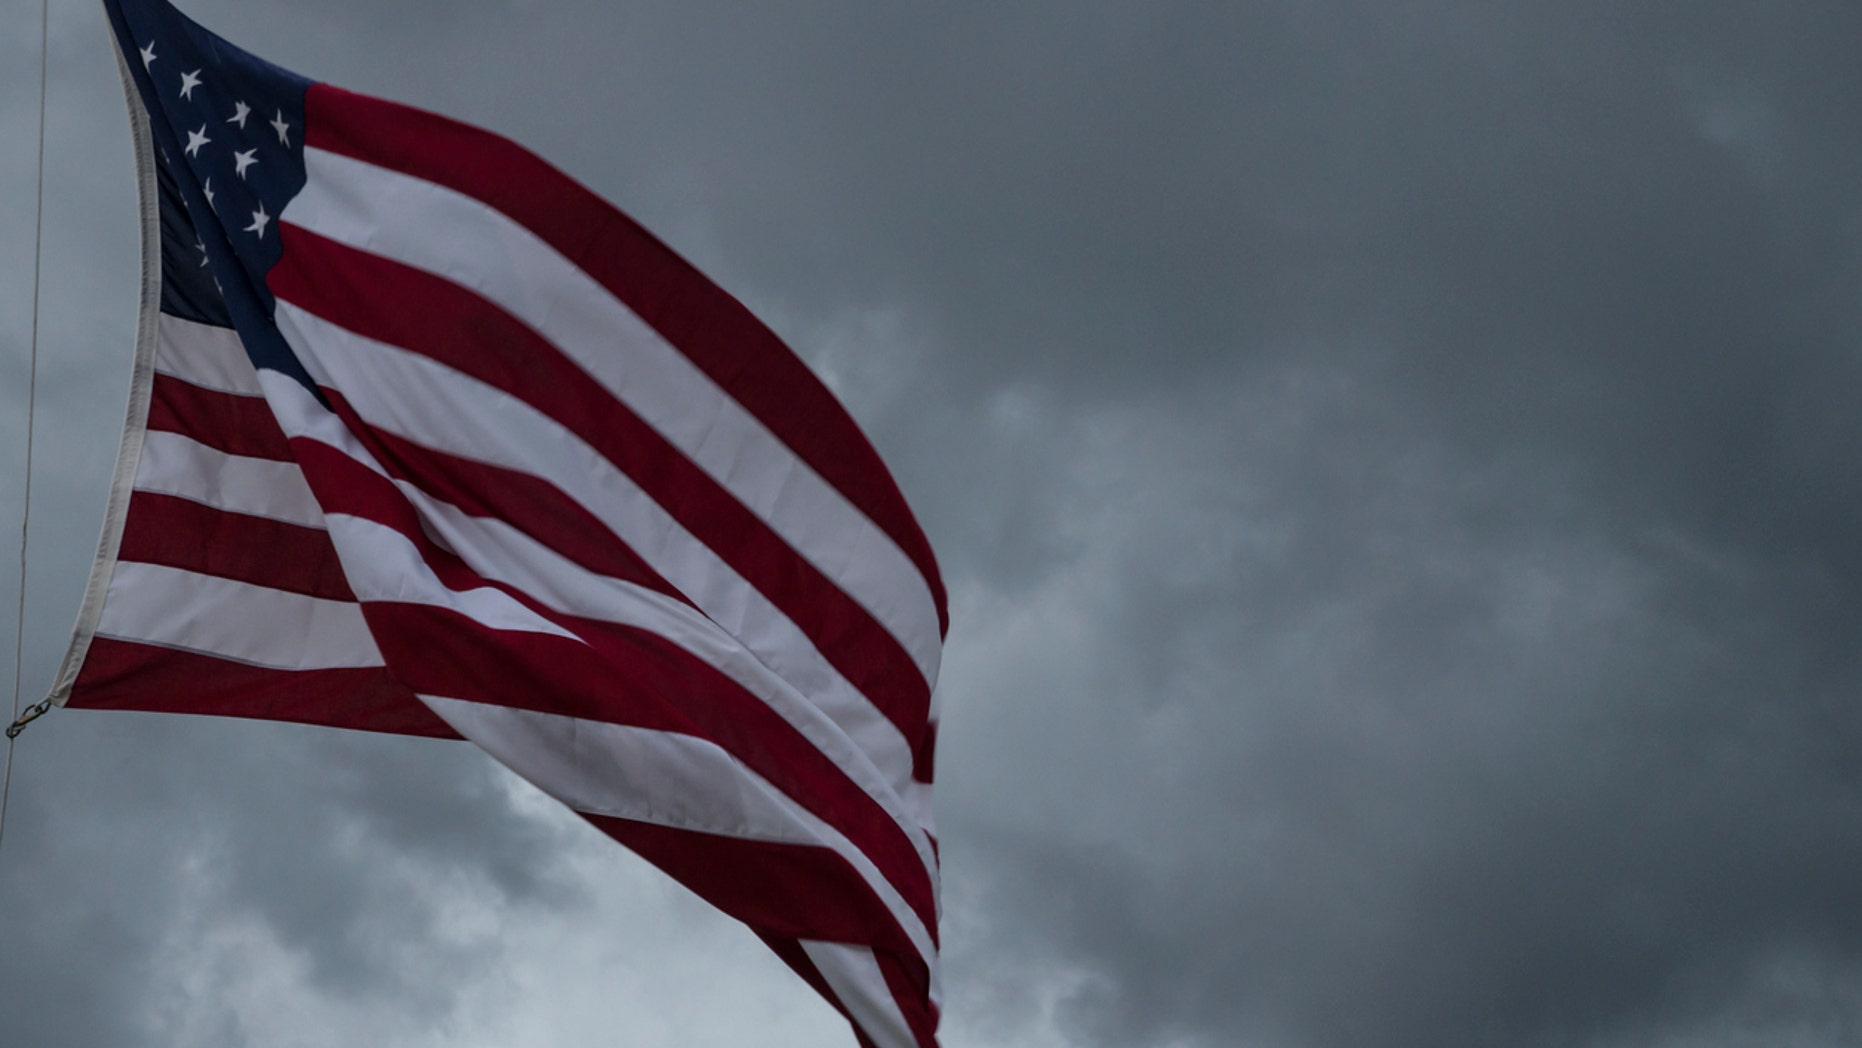 American Flag blowing in the wind of an approaching storm